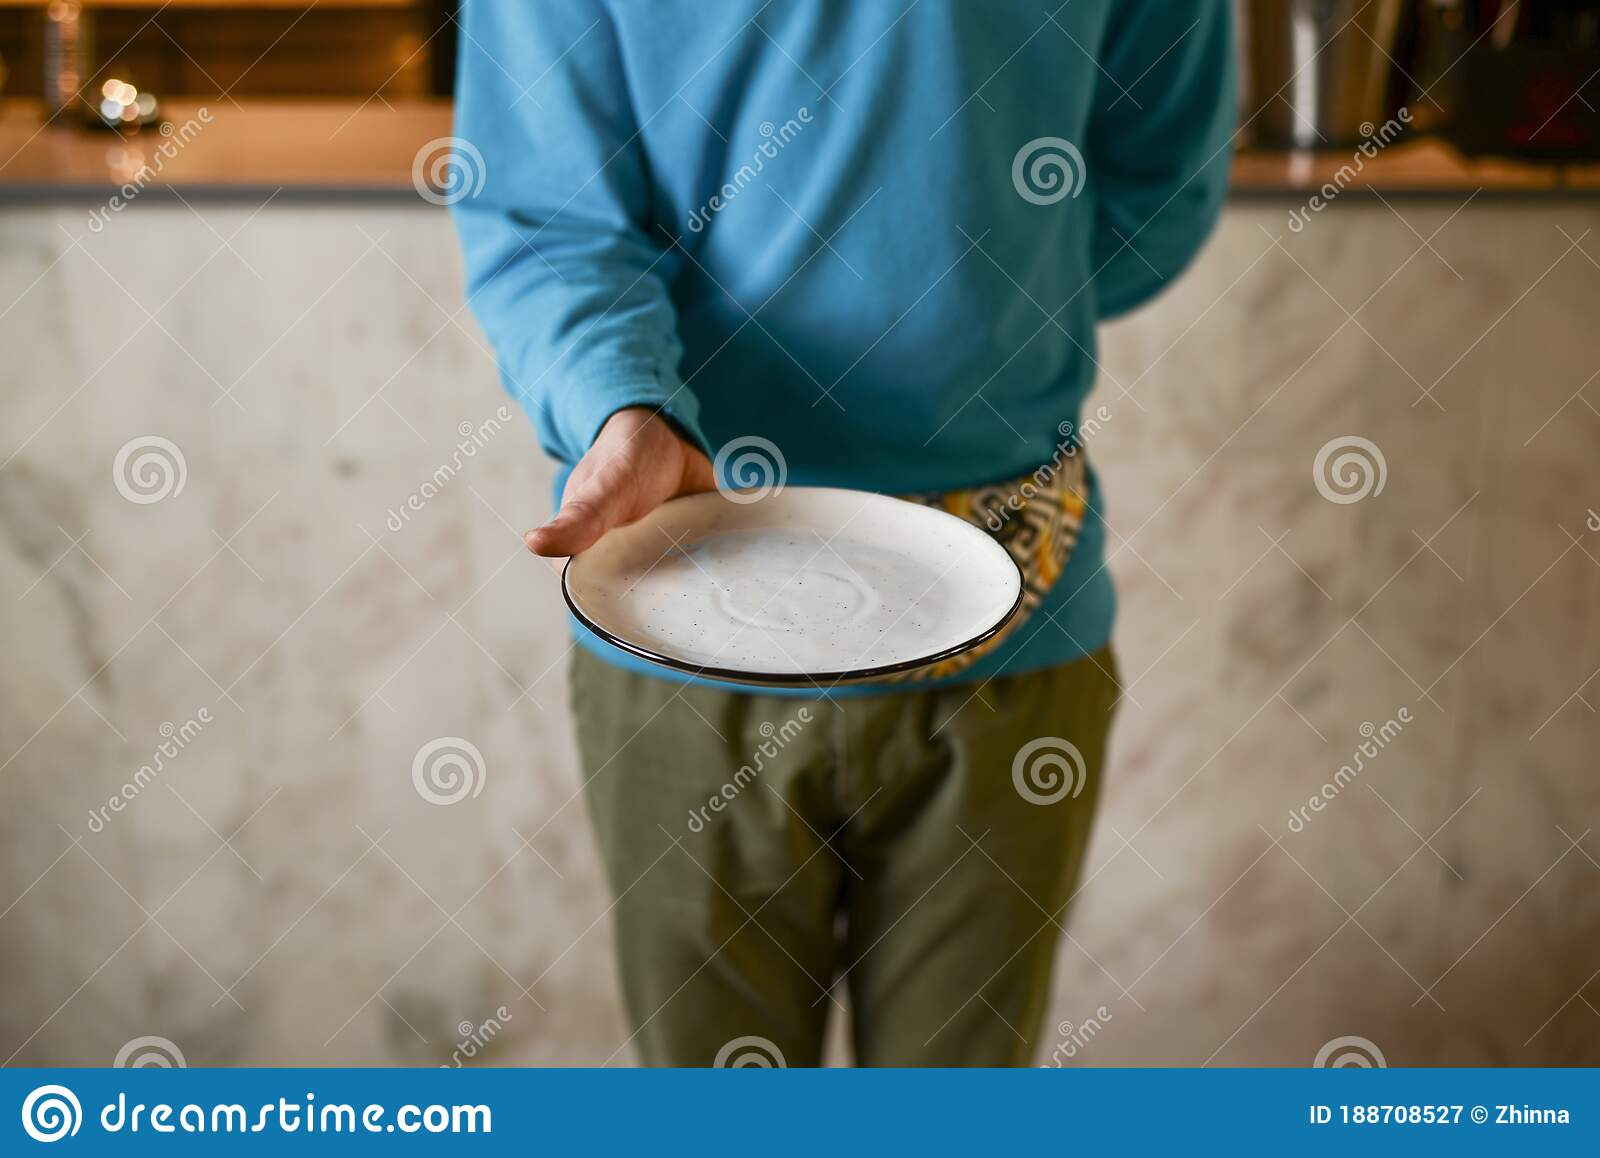 Professional Waiter With Blank Empty Plate In A Restaurant Restaurant Food Photography Concept Stock Image Image Of Dish Occasion 188708527